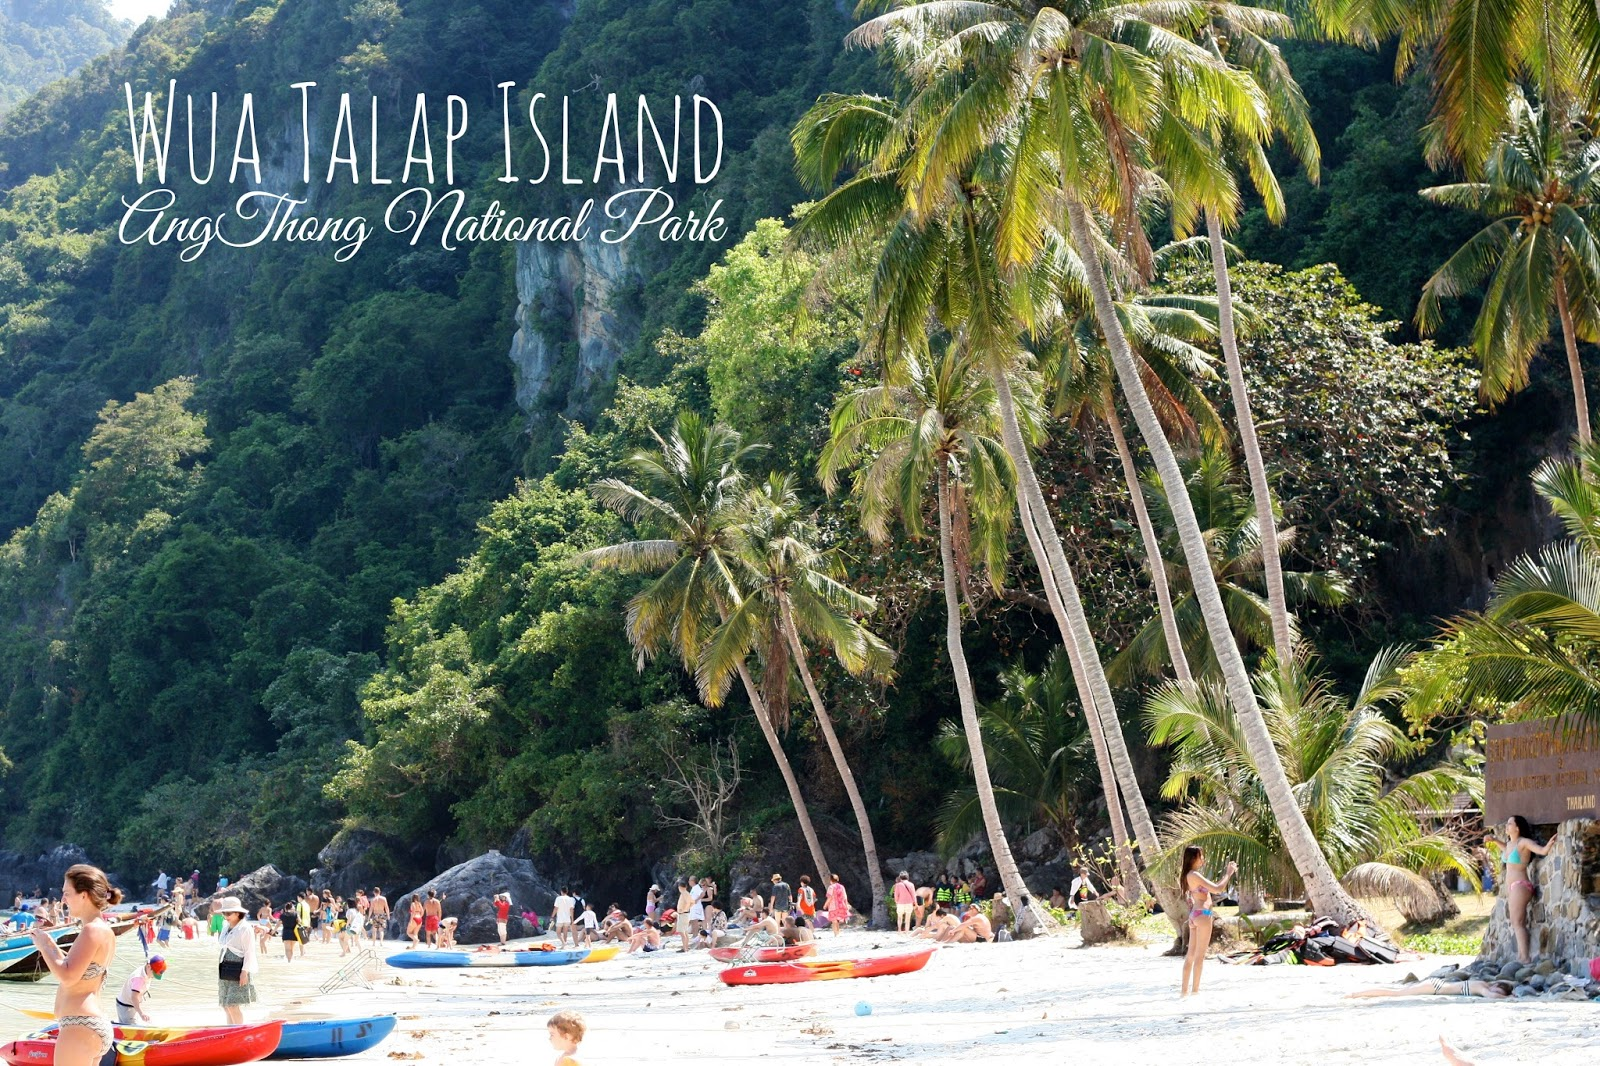 Bien connu Wua Talap Island - Travelin' with JC MS92